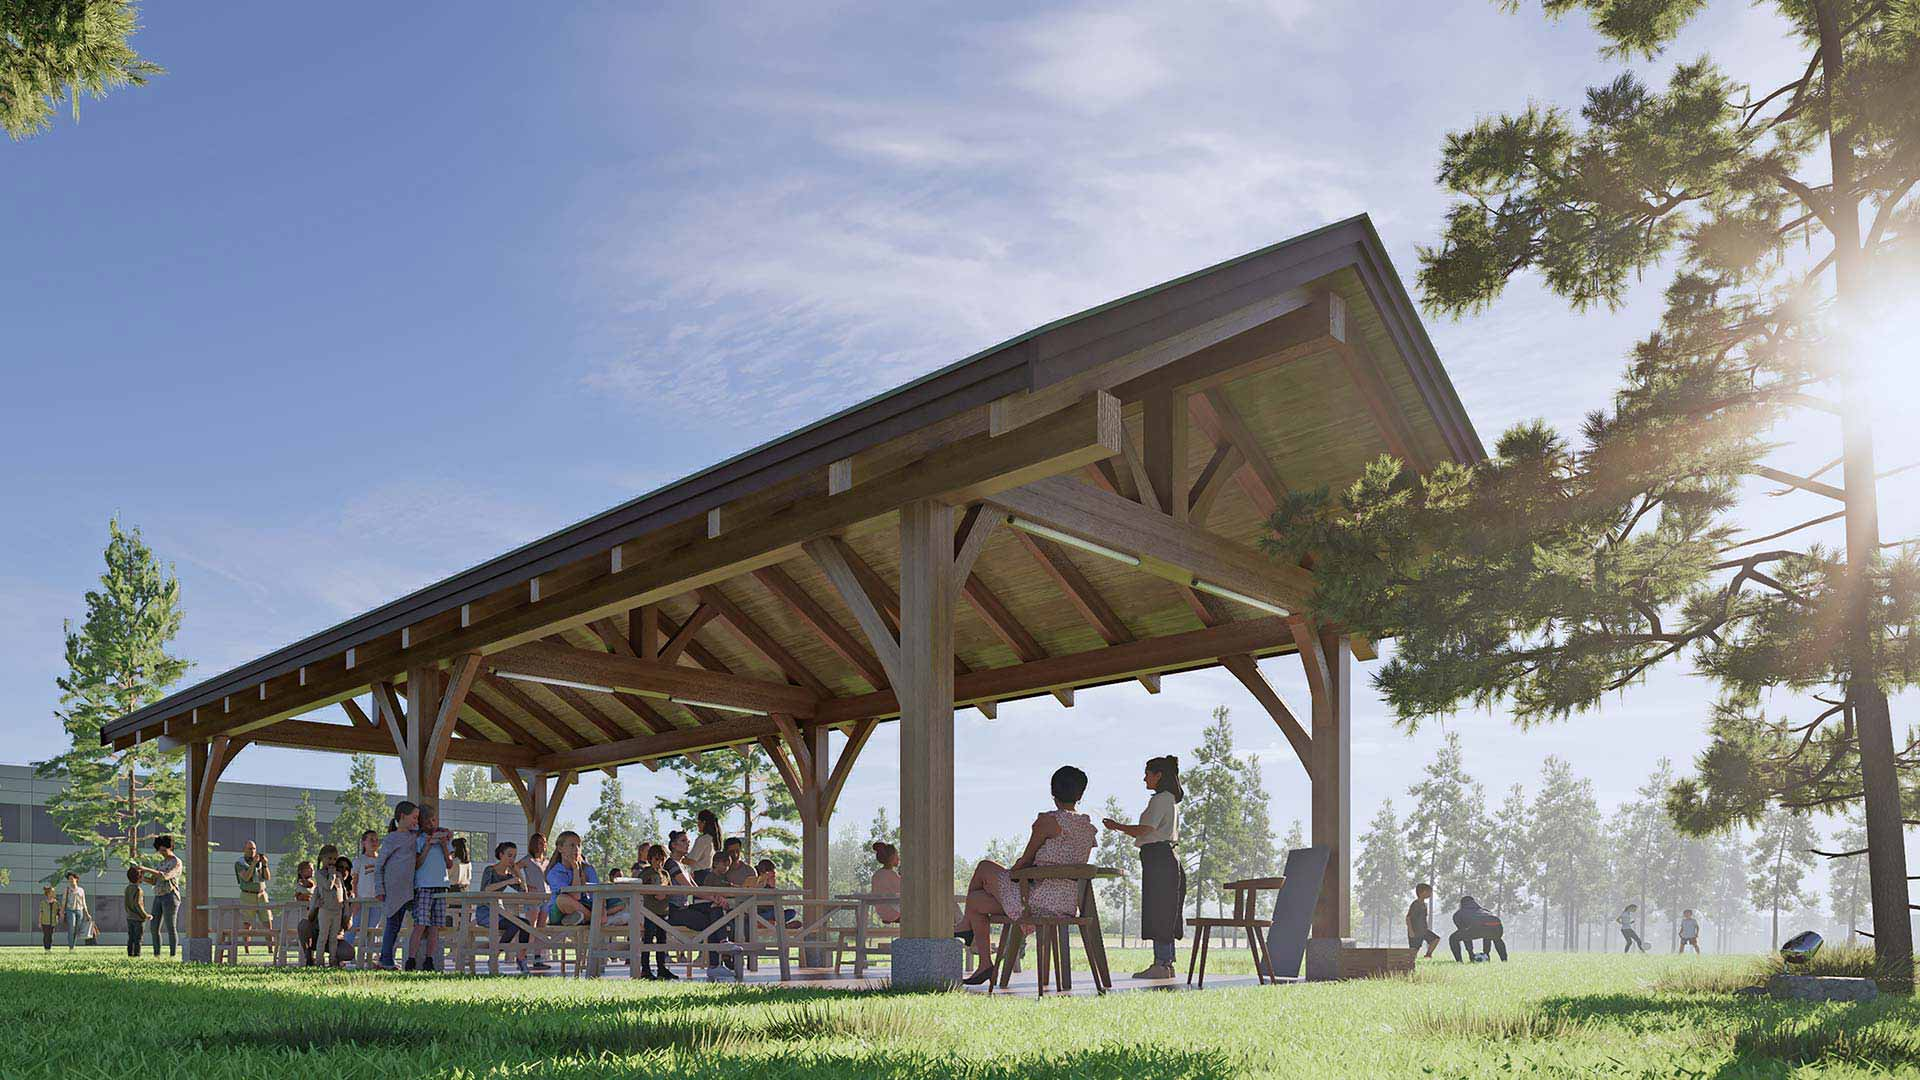 rendering of an outdoor wooden shelter